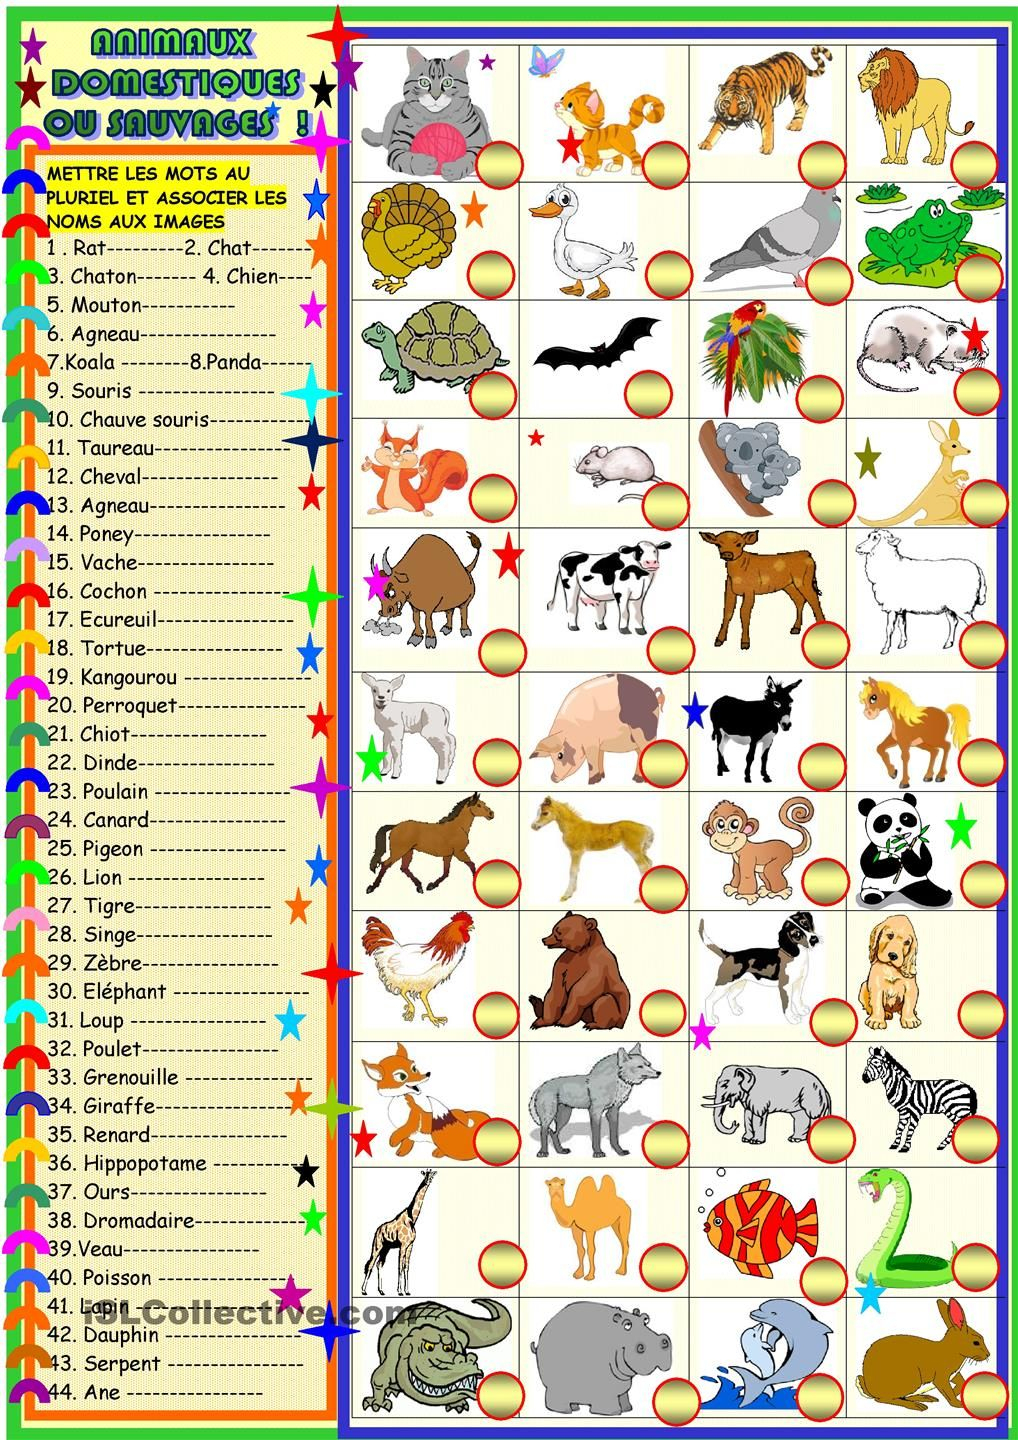 Animaux Domestiques Ou Sauvages | Animaux Domestiques encequiconcerne Les Animaux Domestiques En Maternelle